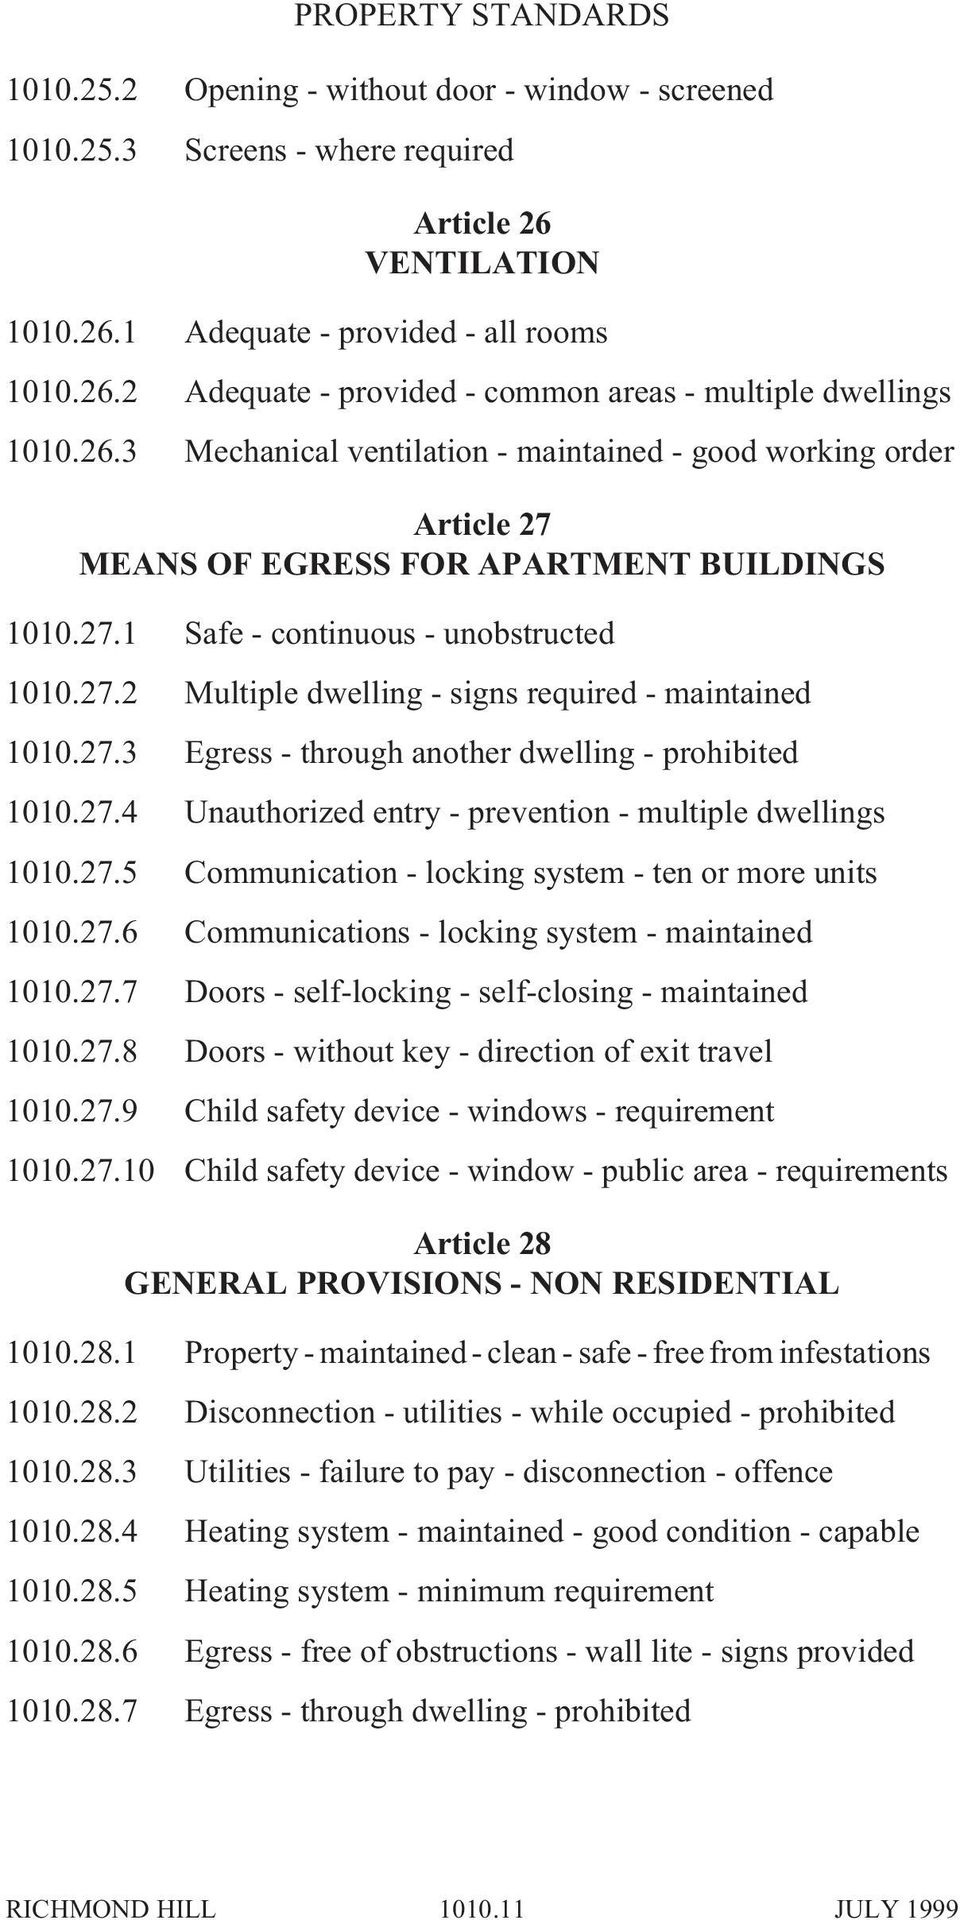 27.3 Egress - through another dwelling - prohibited 1010.27.4 Unauthorized entry - prevention - multiple dwellings 1010.27.5 Communication - locking system - ten or more units 1010.27.6 Communications - locking system - maintained 1010.